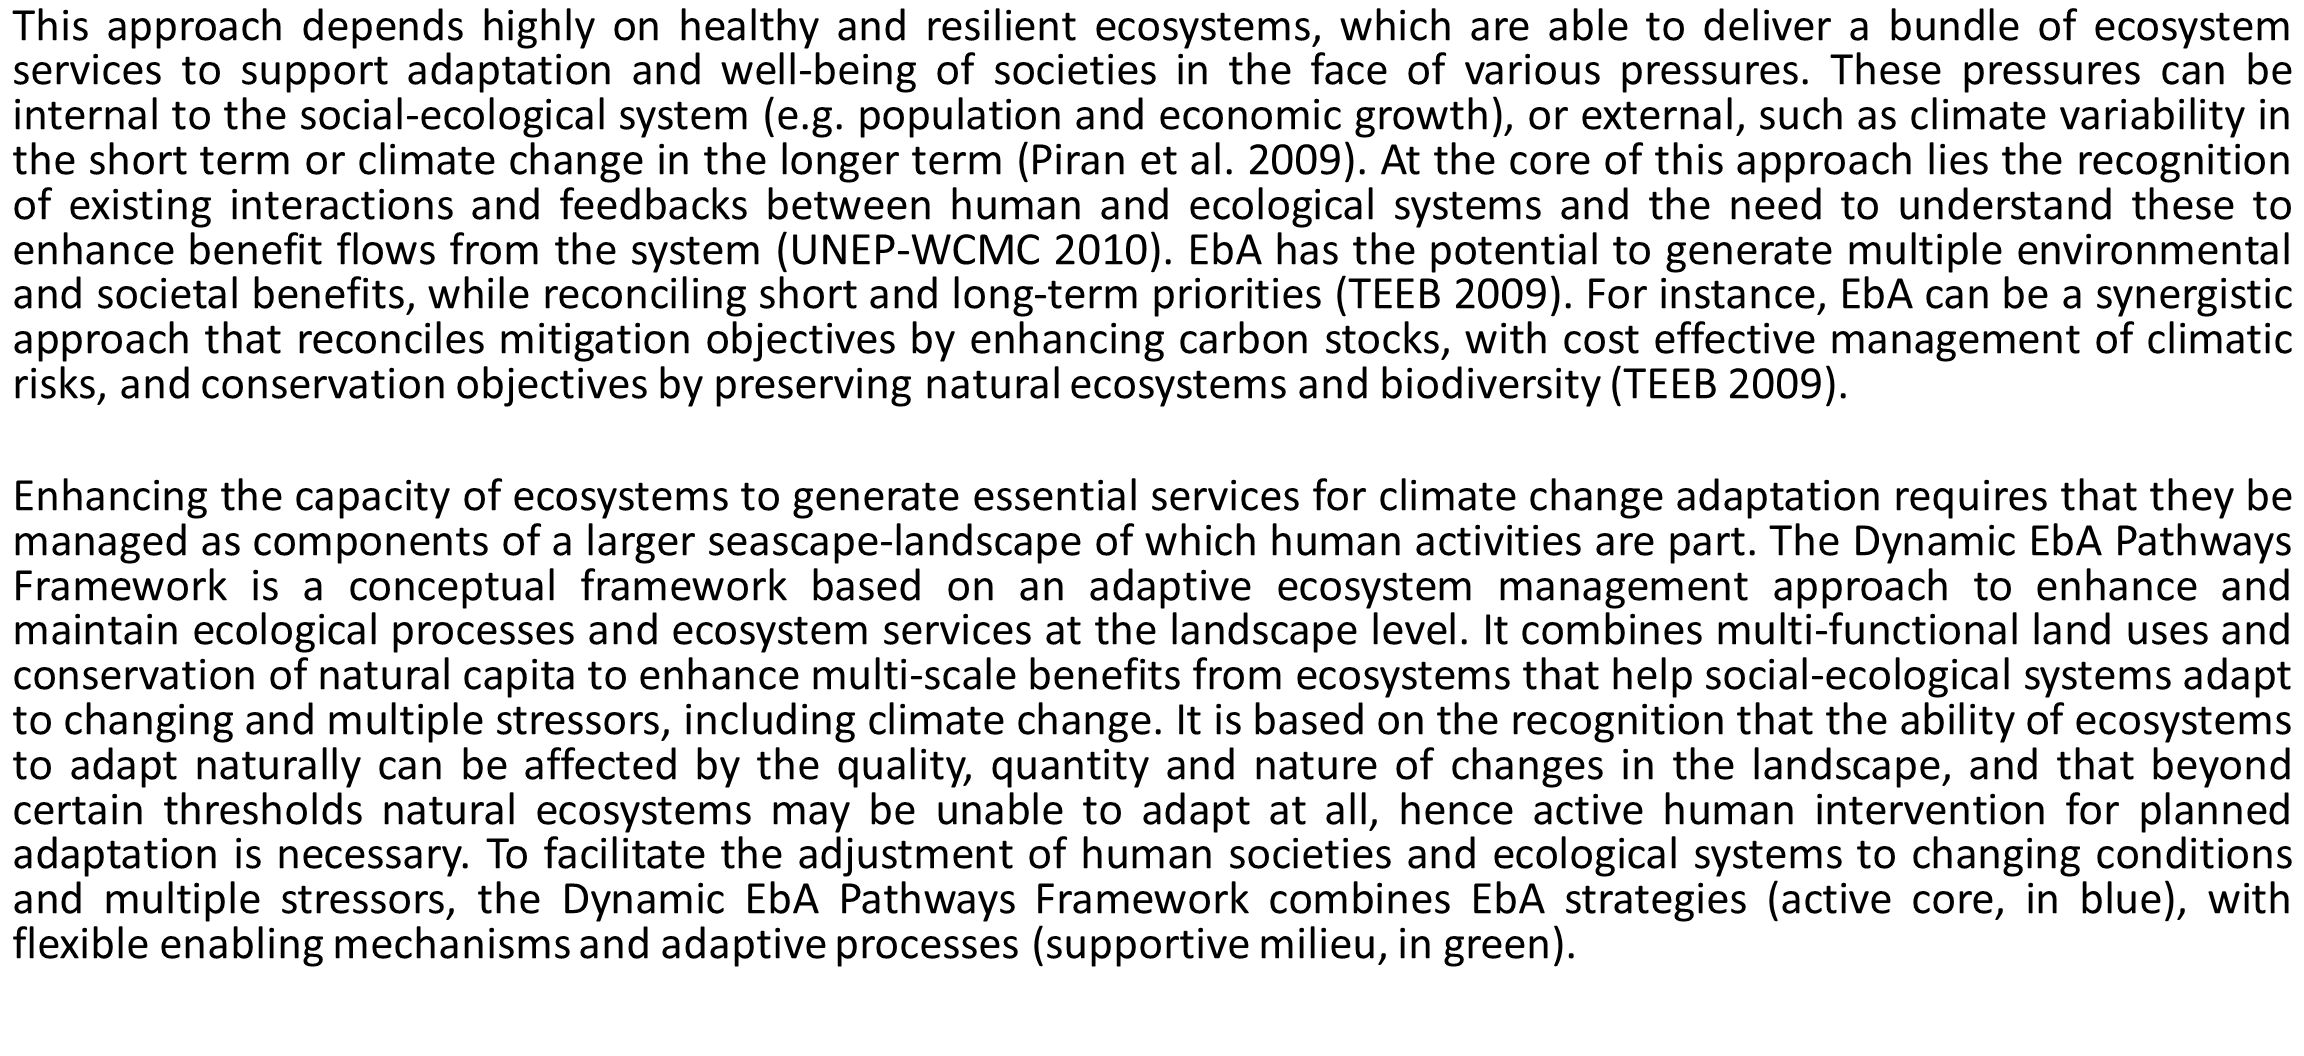 This approach depends highly on healthy and resilient ecosystems, which are able to deliver a bundle of ecosystem services to support adaptation and well-being of societies in the face of various pressures. These pressures can be internal to the social-ecological system (e.g. population and economic growth), or external, such as climate variability in the short term or climate change in the longer term (Piran et al. 2009). At the core of this approach lies the recognition of existing interactions and feedbacks between human and ecological systems and the need to understand these to enhance benefit flows from the system (UNEP-WCMC 2010). EbA has the potential to generate multiple environmental and societal benefits, while reconciling short and long-term priorities (TEEB 2009). For instance, EbA can be a synergistic approach that reconciles mitigation objectives by enhancing carbon stocks, with cost effective management of climatic risks, and conservation objectives by preserving natural ecosystems and biodiversity (TEEB 2009).